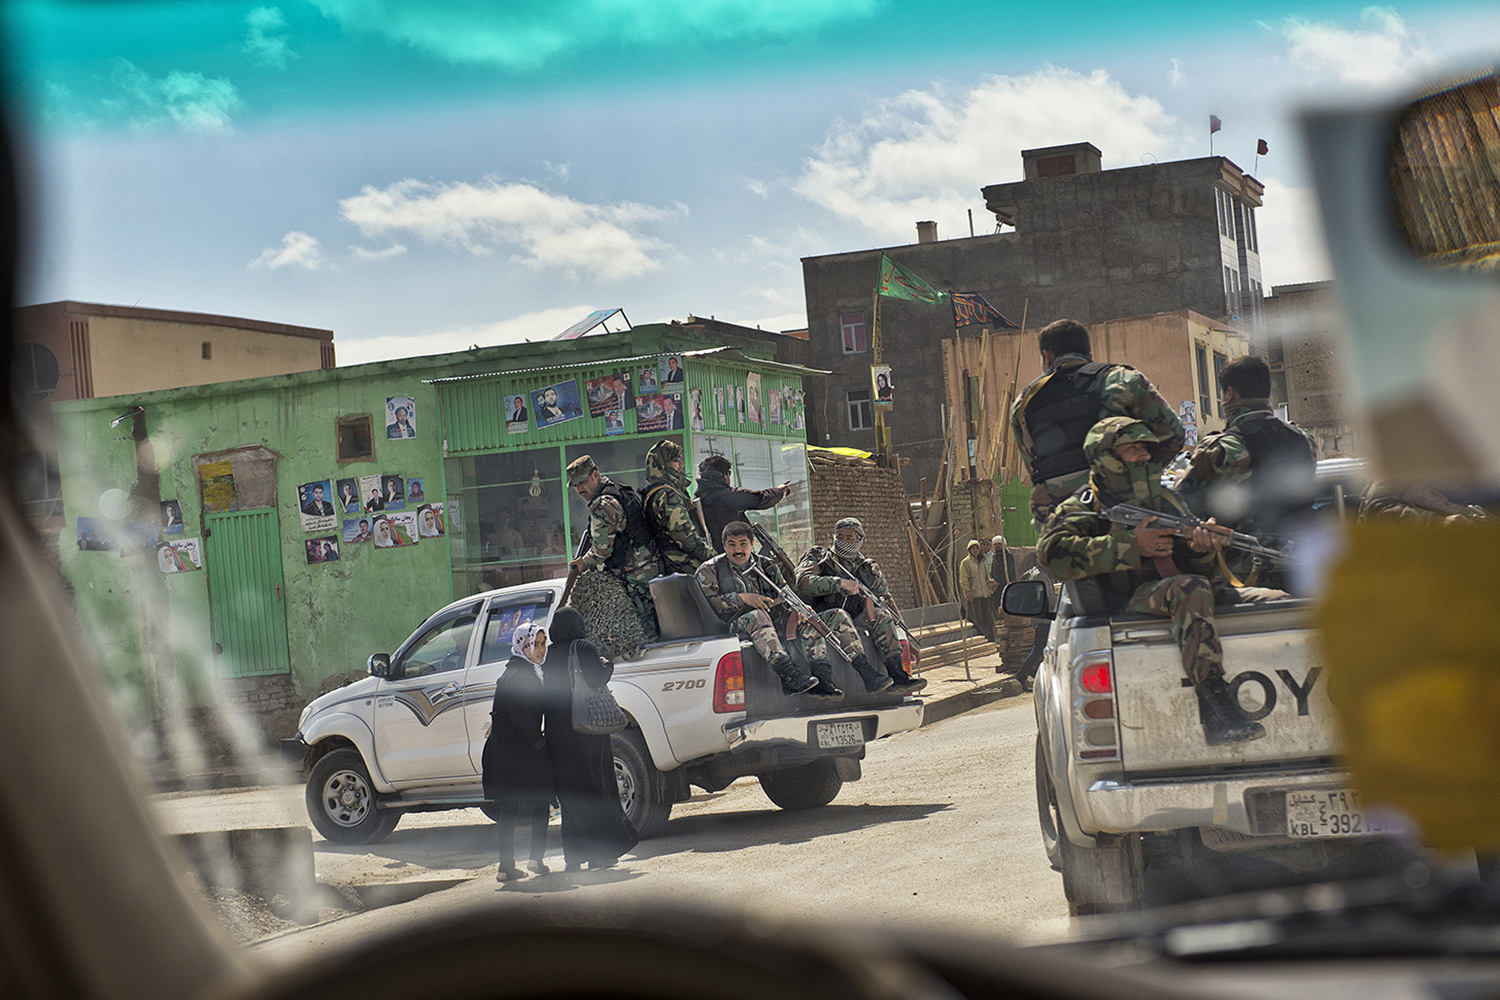 Afghan security forces accompanying Presidential candidate Zalmai Rassoul and Vice Presidential candidate Habiba Sarabi ride past Afghan women in Mazar-i-Sharif, Afghanistan, March 27, 2014.